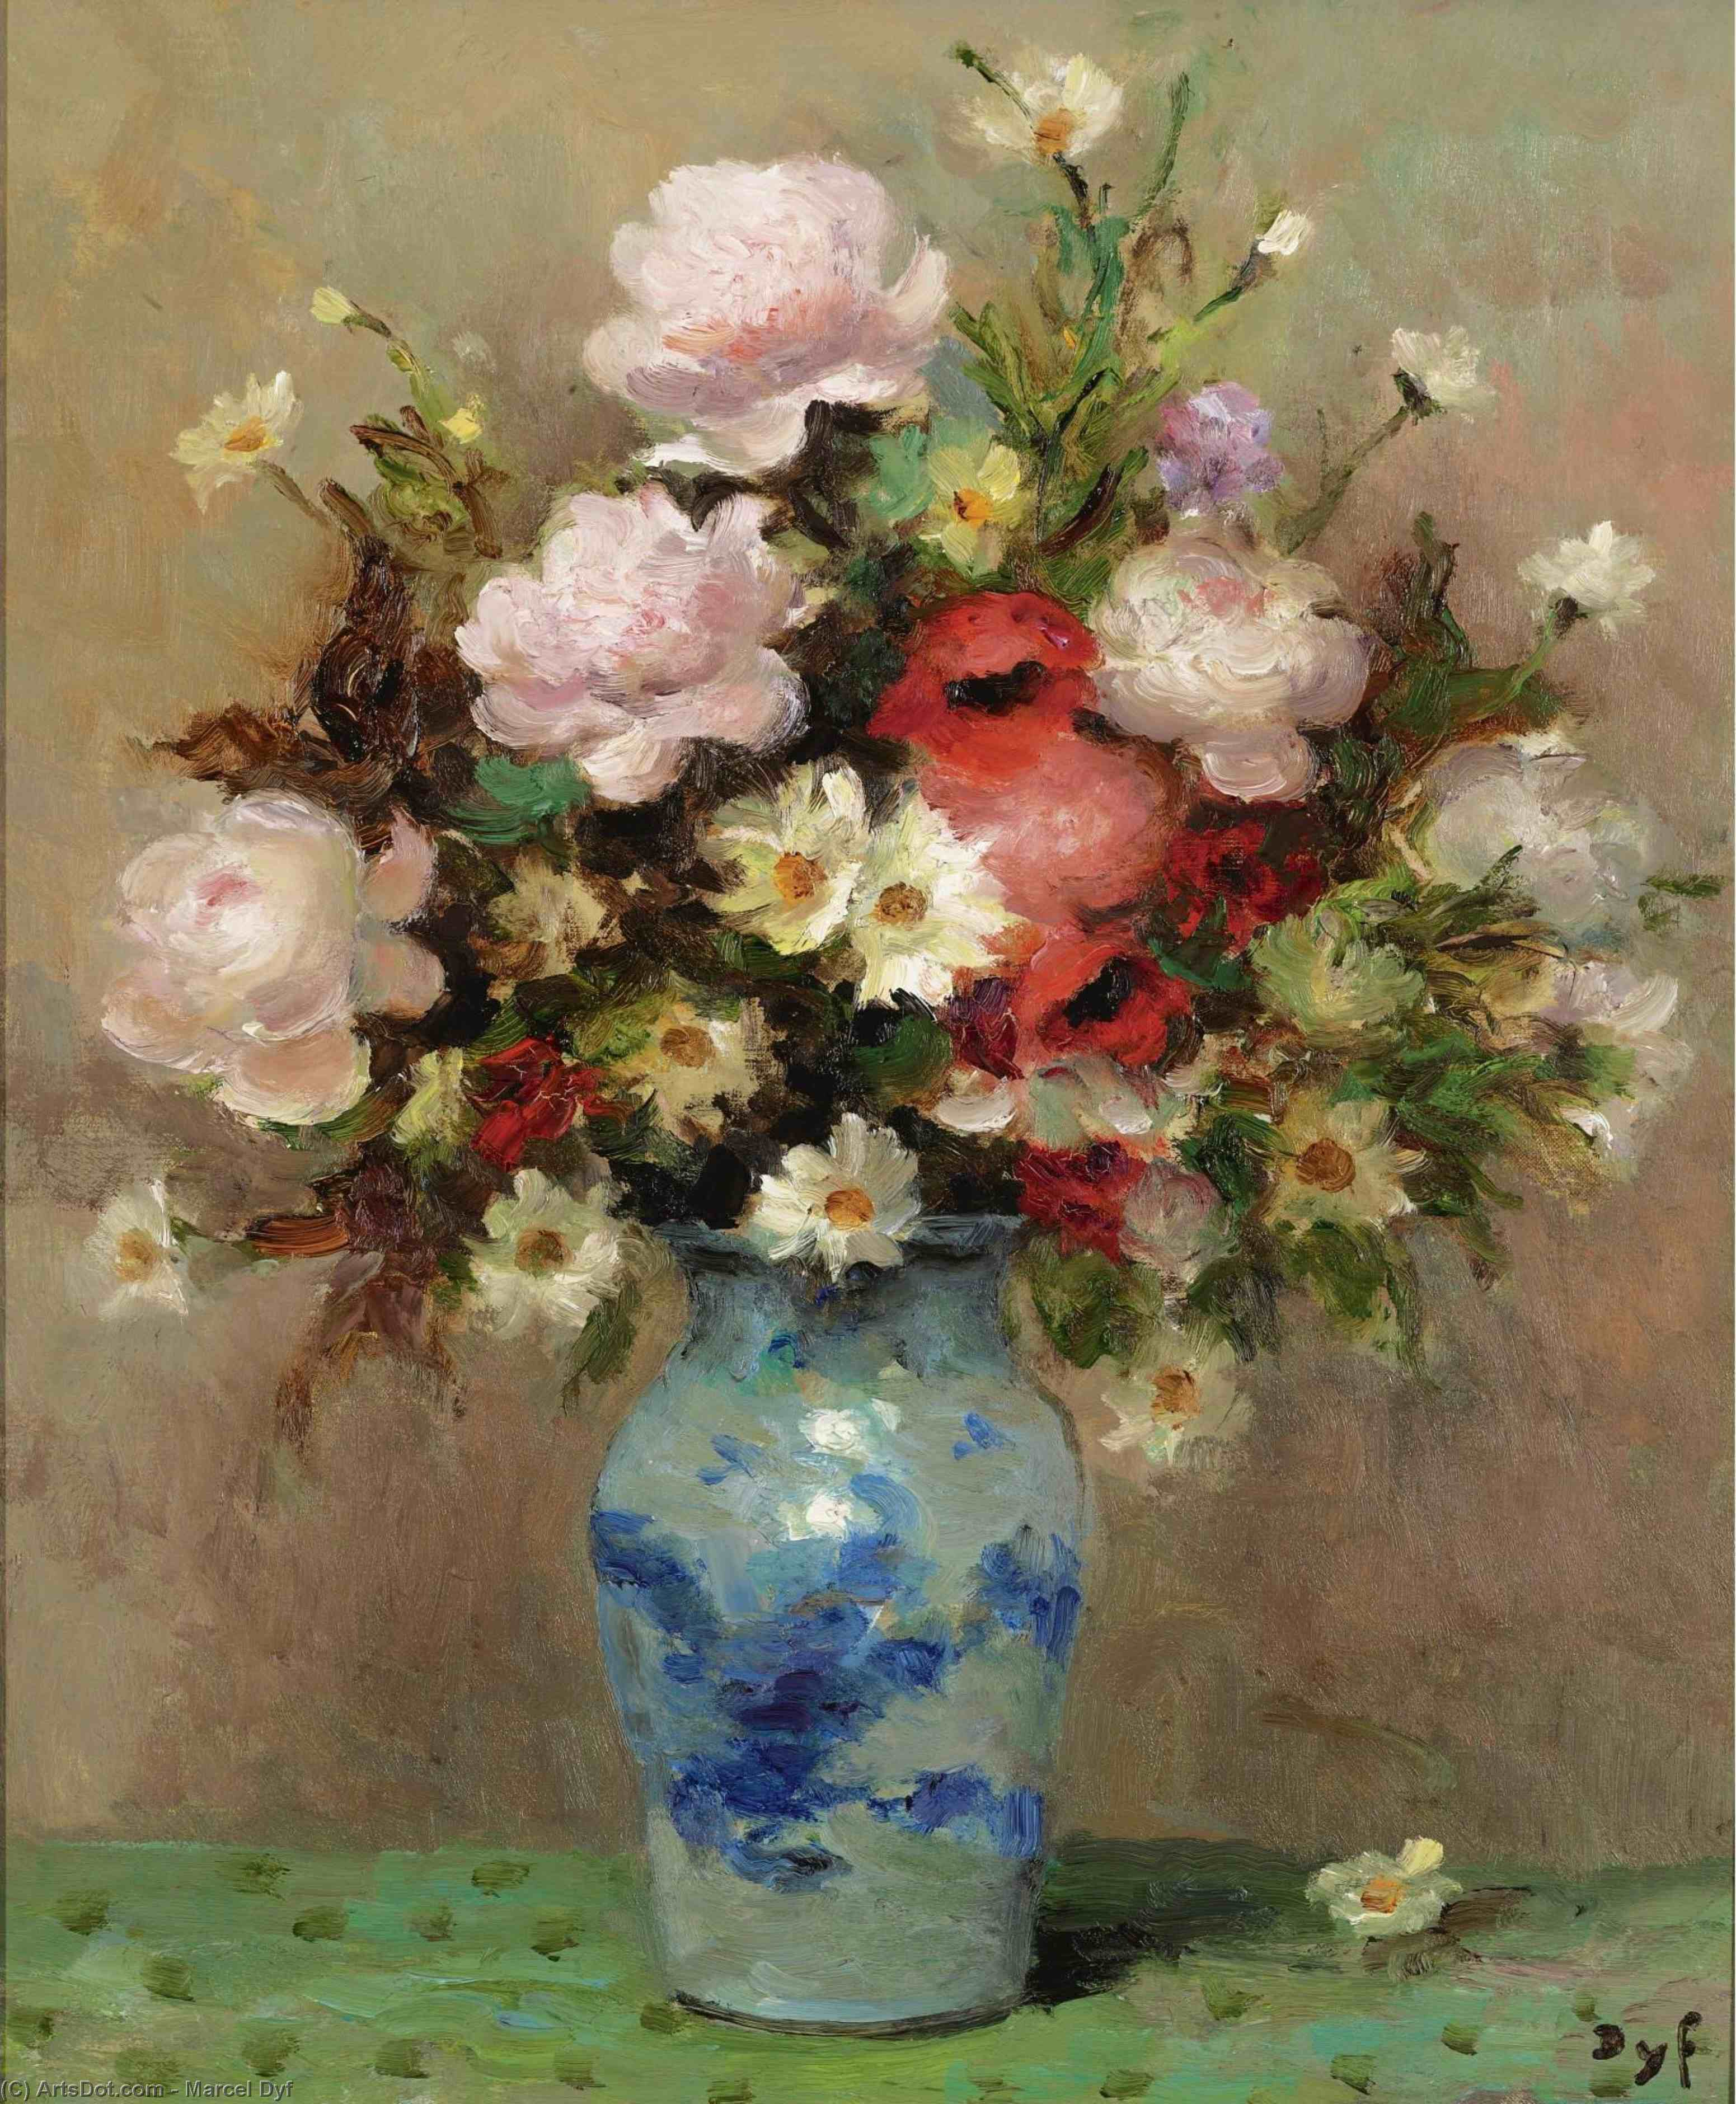 Peonies and Anemones, (1984) by Marcel Dyf (1899-1985, France)